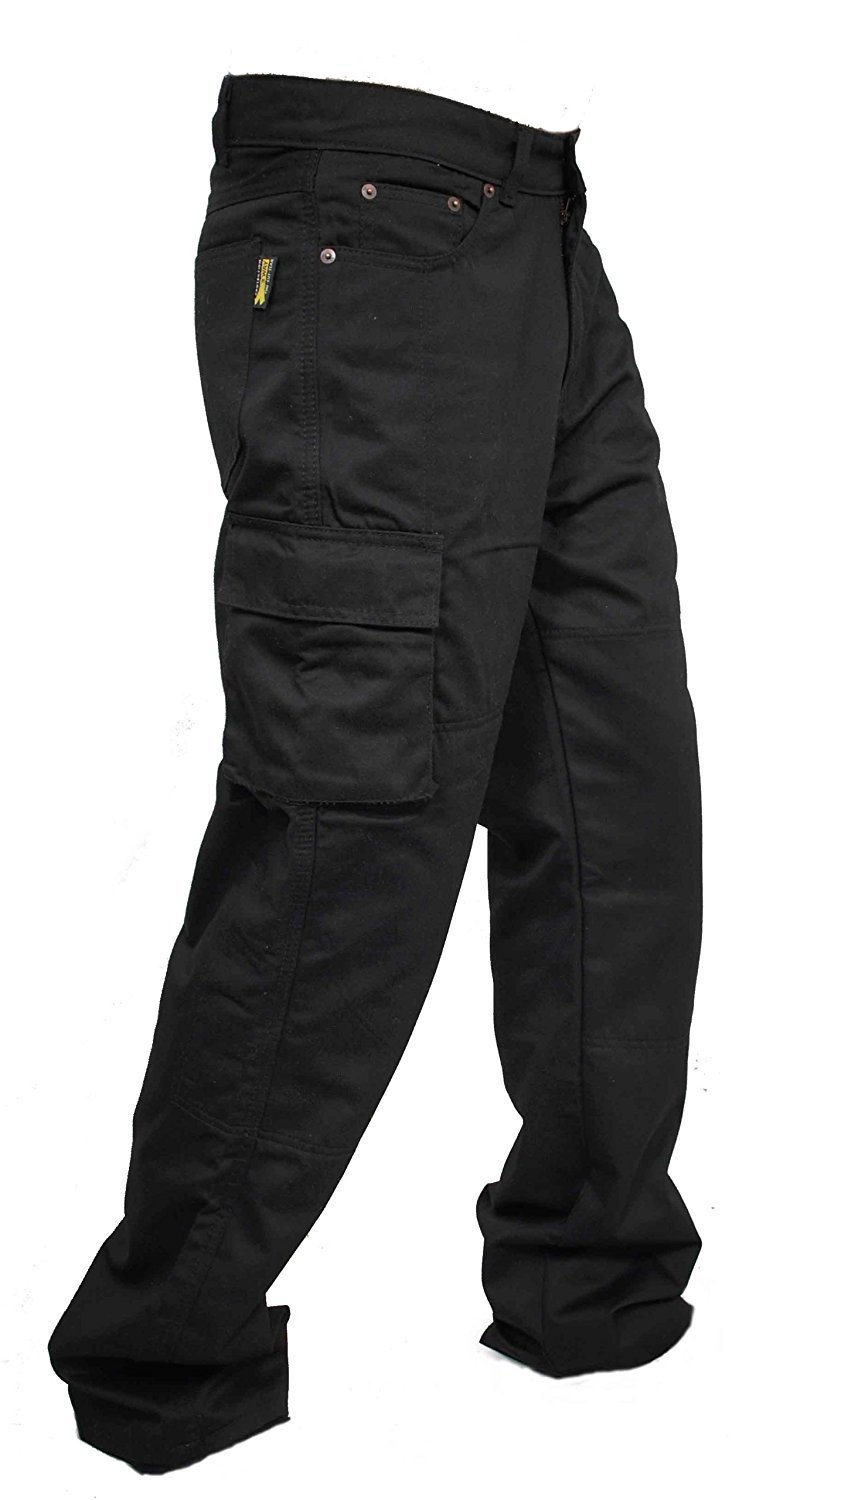 Navy Endurance Mens Cargo Combat Work Trouser with Knee Pad Pockets and Reinforced Seams Available in Black Grey//Black /& Black//Grey